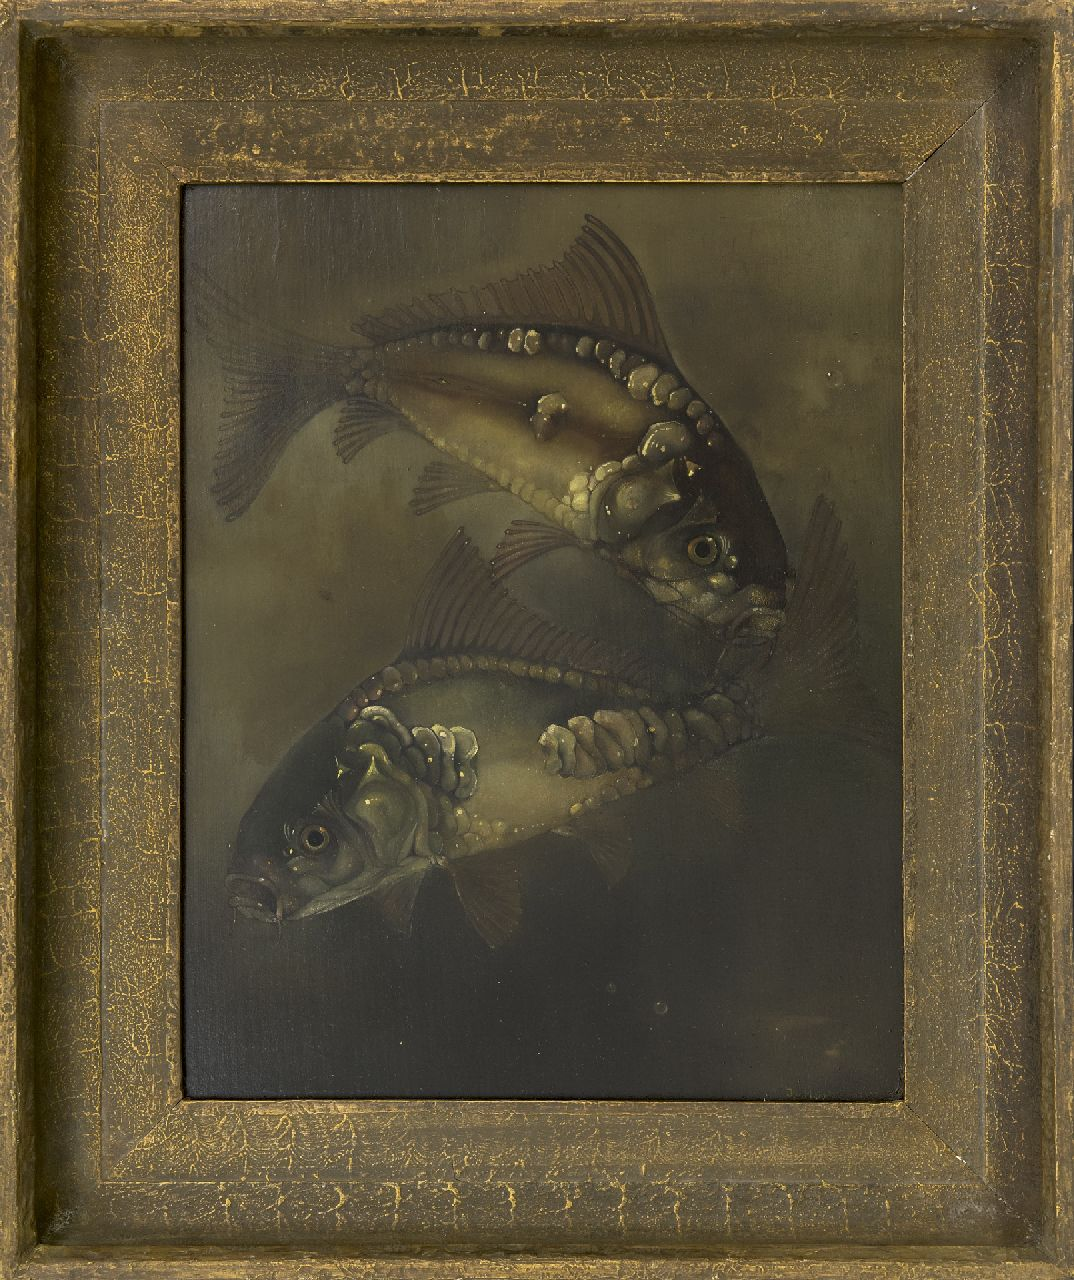 Hoboken J. van | Jacoba 'Jemmy' van Hoboken | Paintings offered for sale | Mirror carps, oil on panel 40.2 x 32.3 cm, signed l.r. and dated 1932